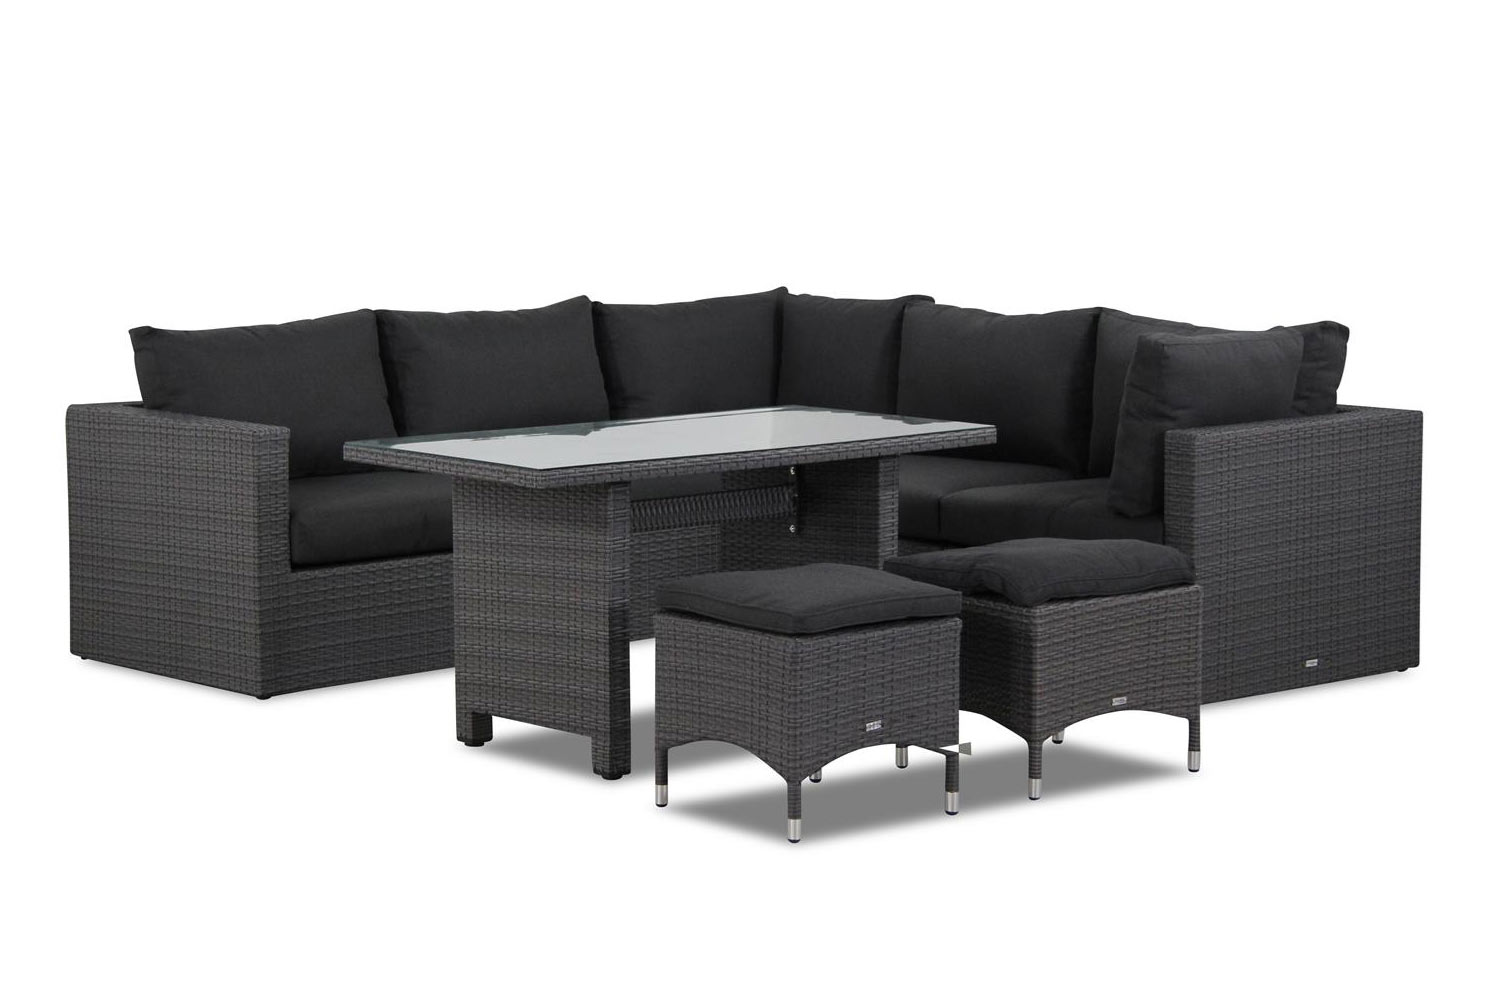 Garden Collections Houston dining loungeset 8-delig